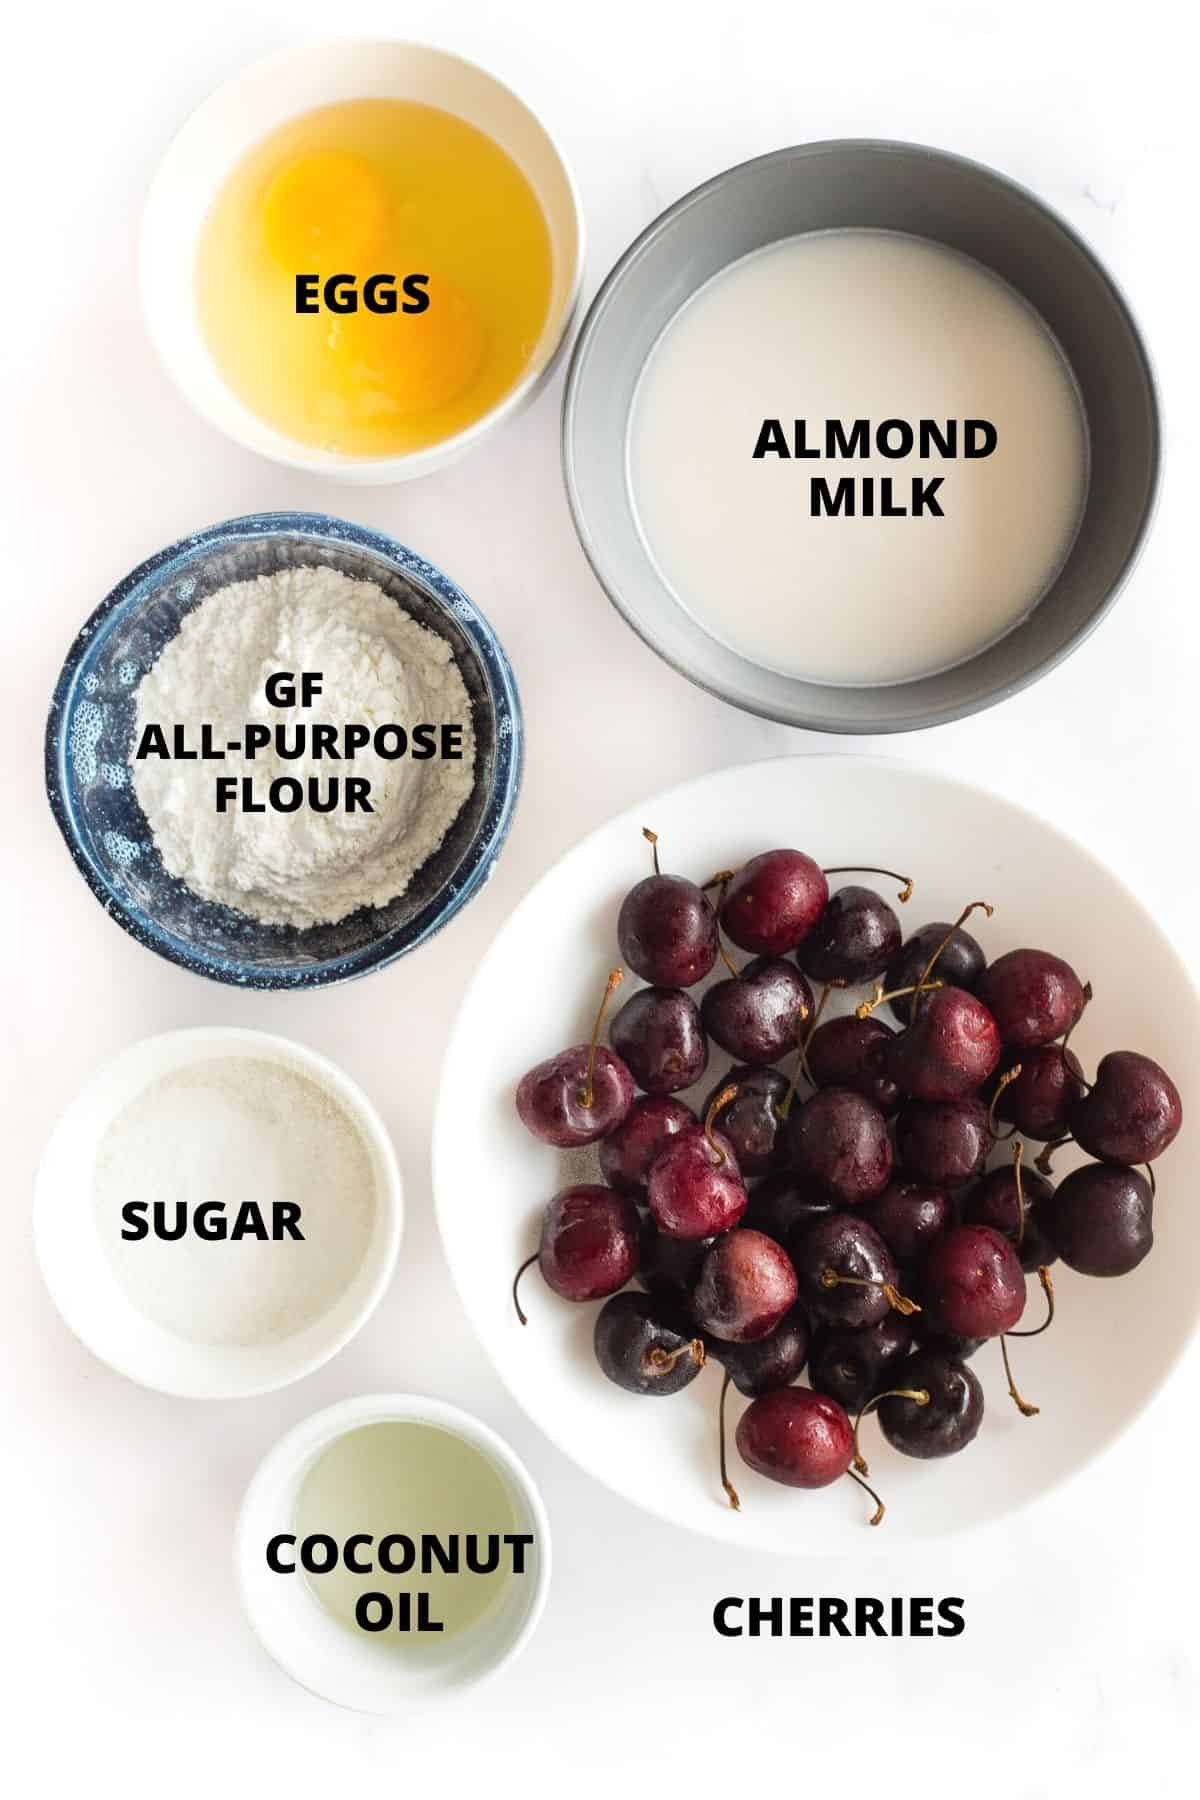 Labeled ingredients for cherry clafoutis recipe laid out on a marble board.